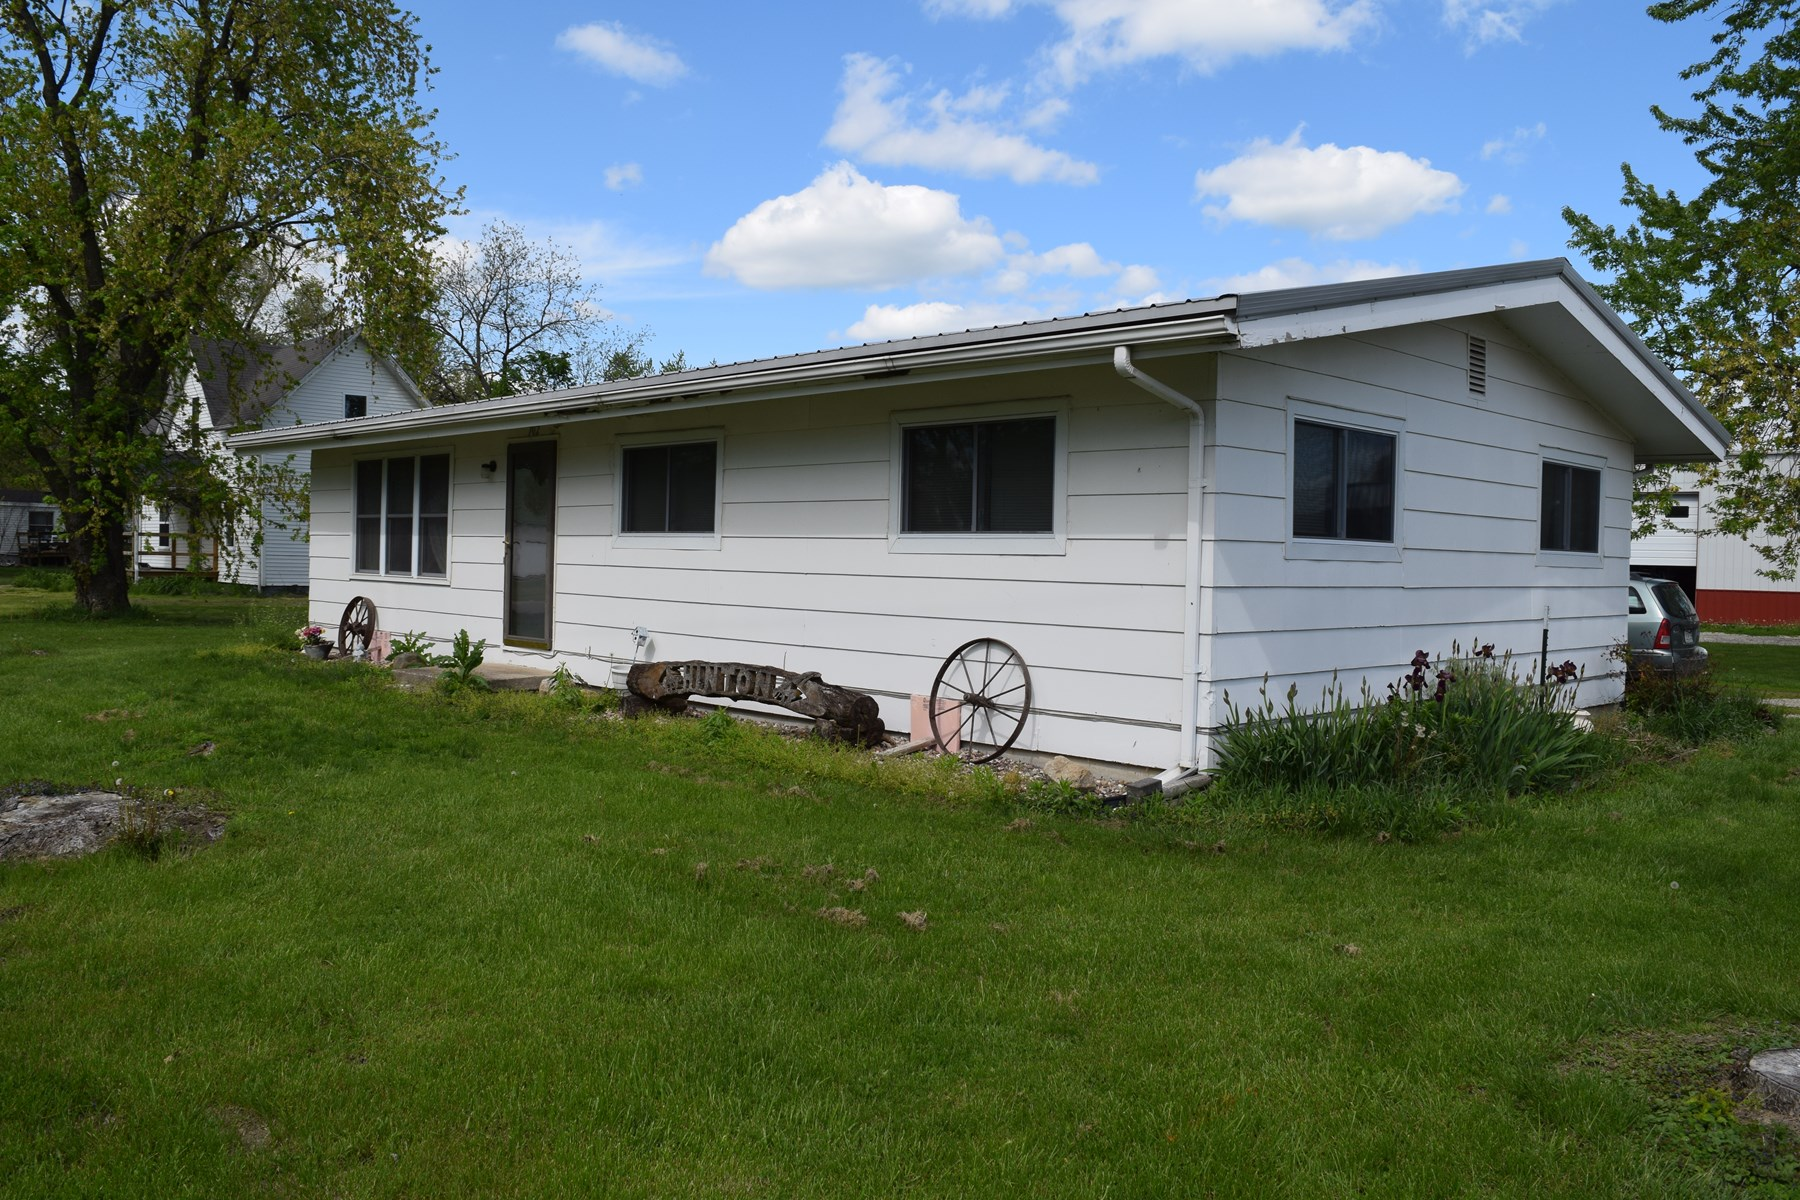 Ranch home for sale near City Park in Queen City, Missouri